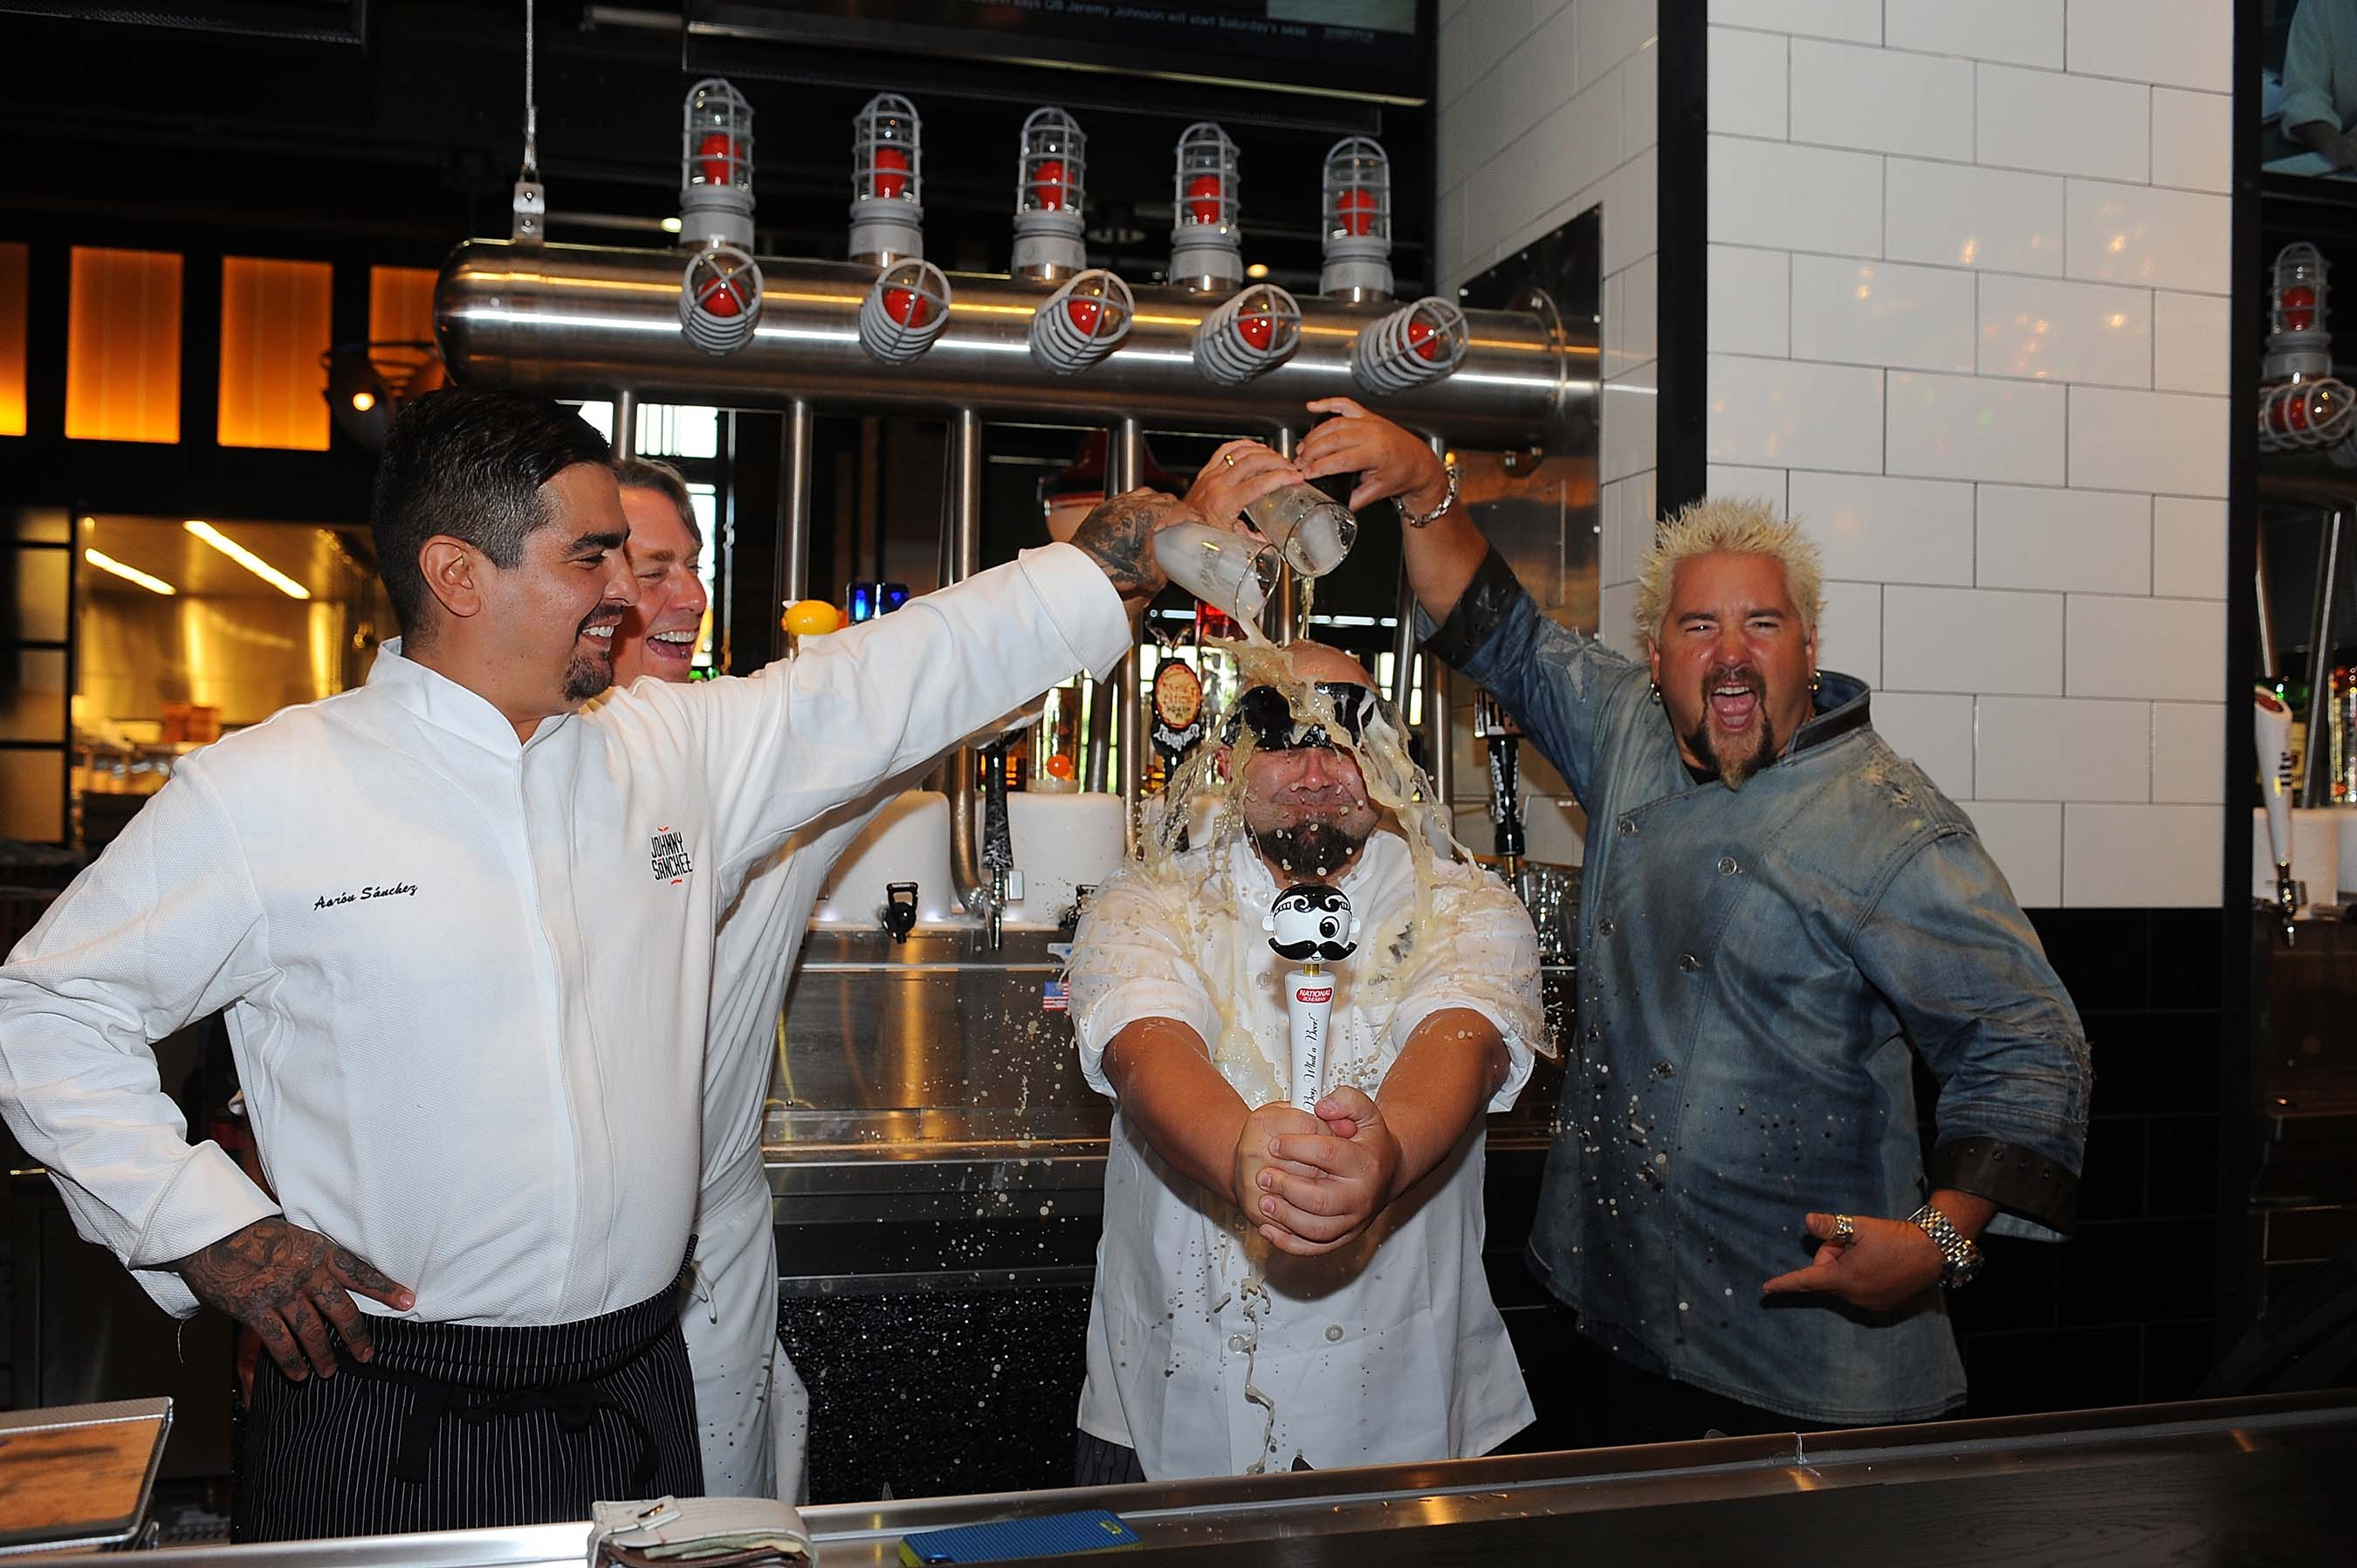 Celebrity Chefs Aaron Sanchez, John Besh, Duff Goldman and Guy Fieri celebrate the grand opening of Horseshoe Casino Baltimore on August 26, 2014. PHOTO CREDIT: Larry French